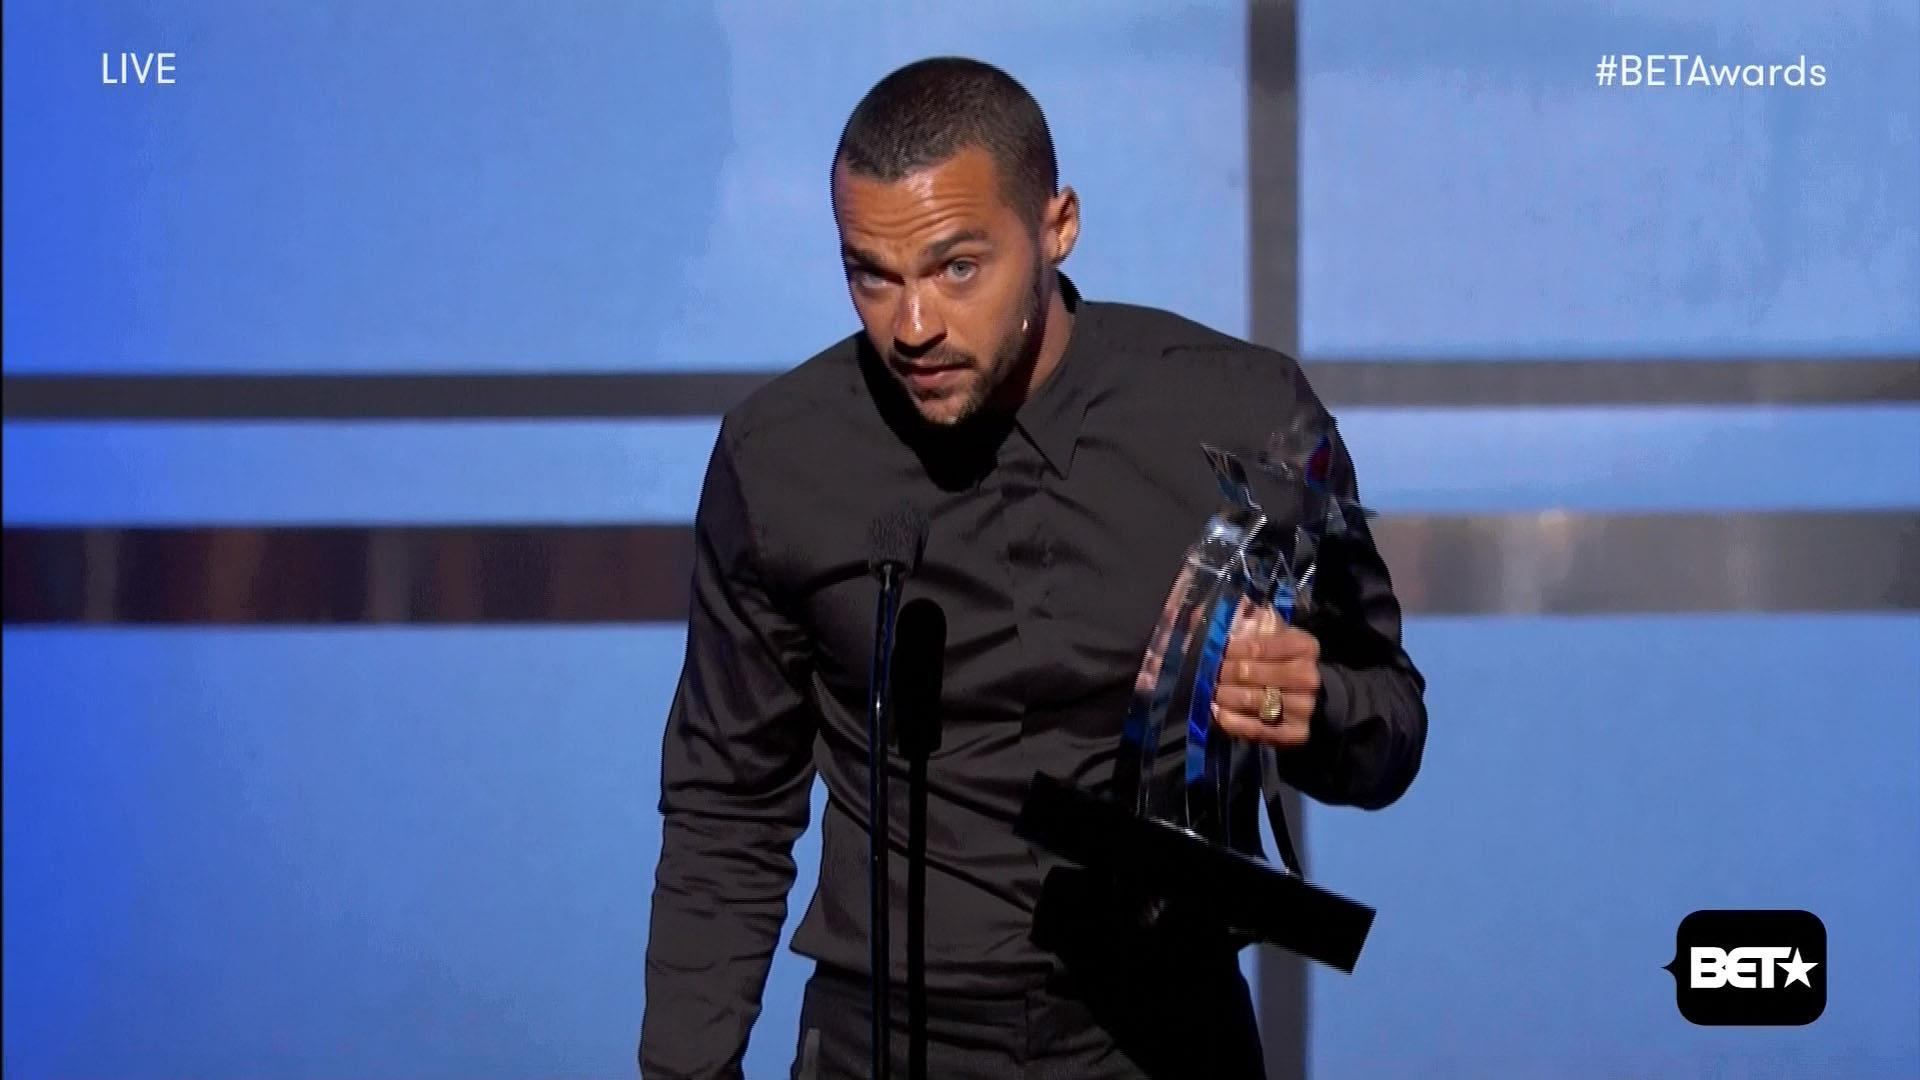 Highlights from Jesse Williams' BET speech